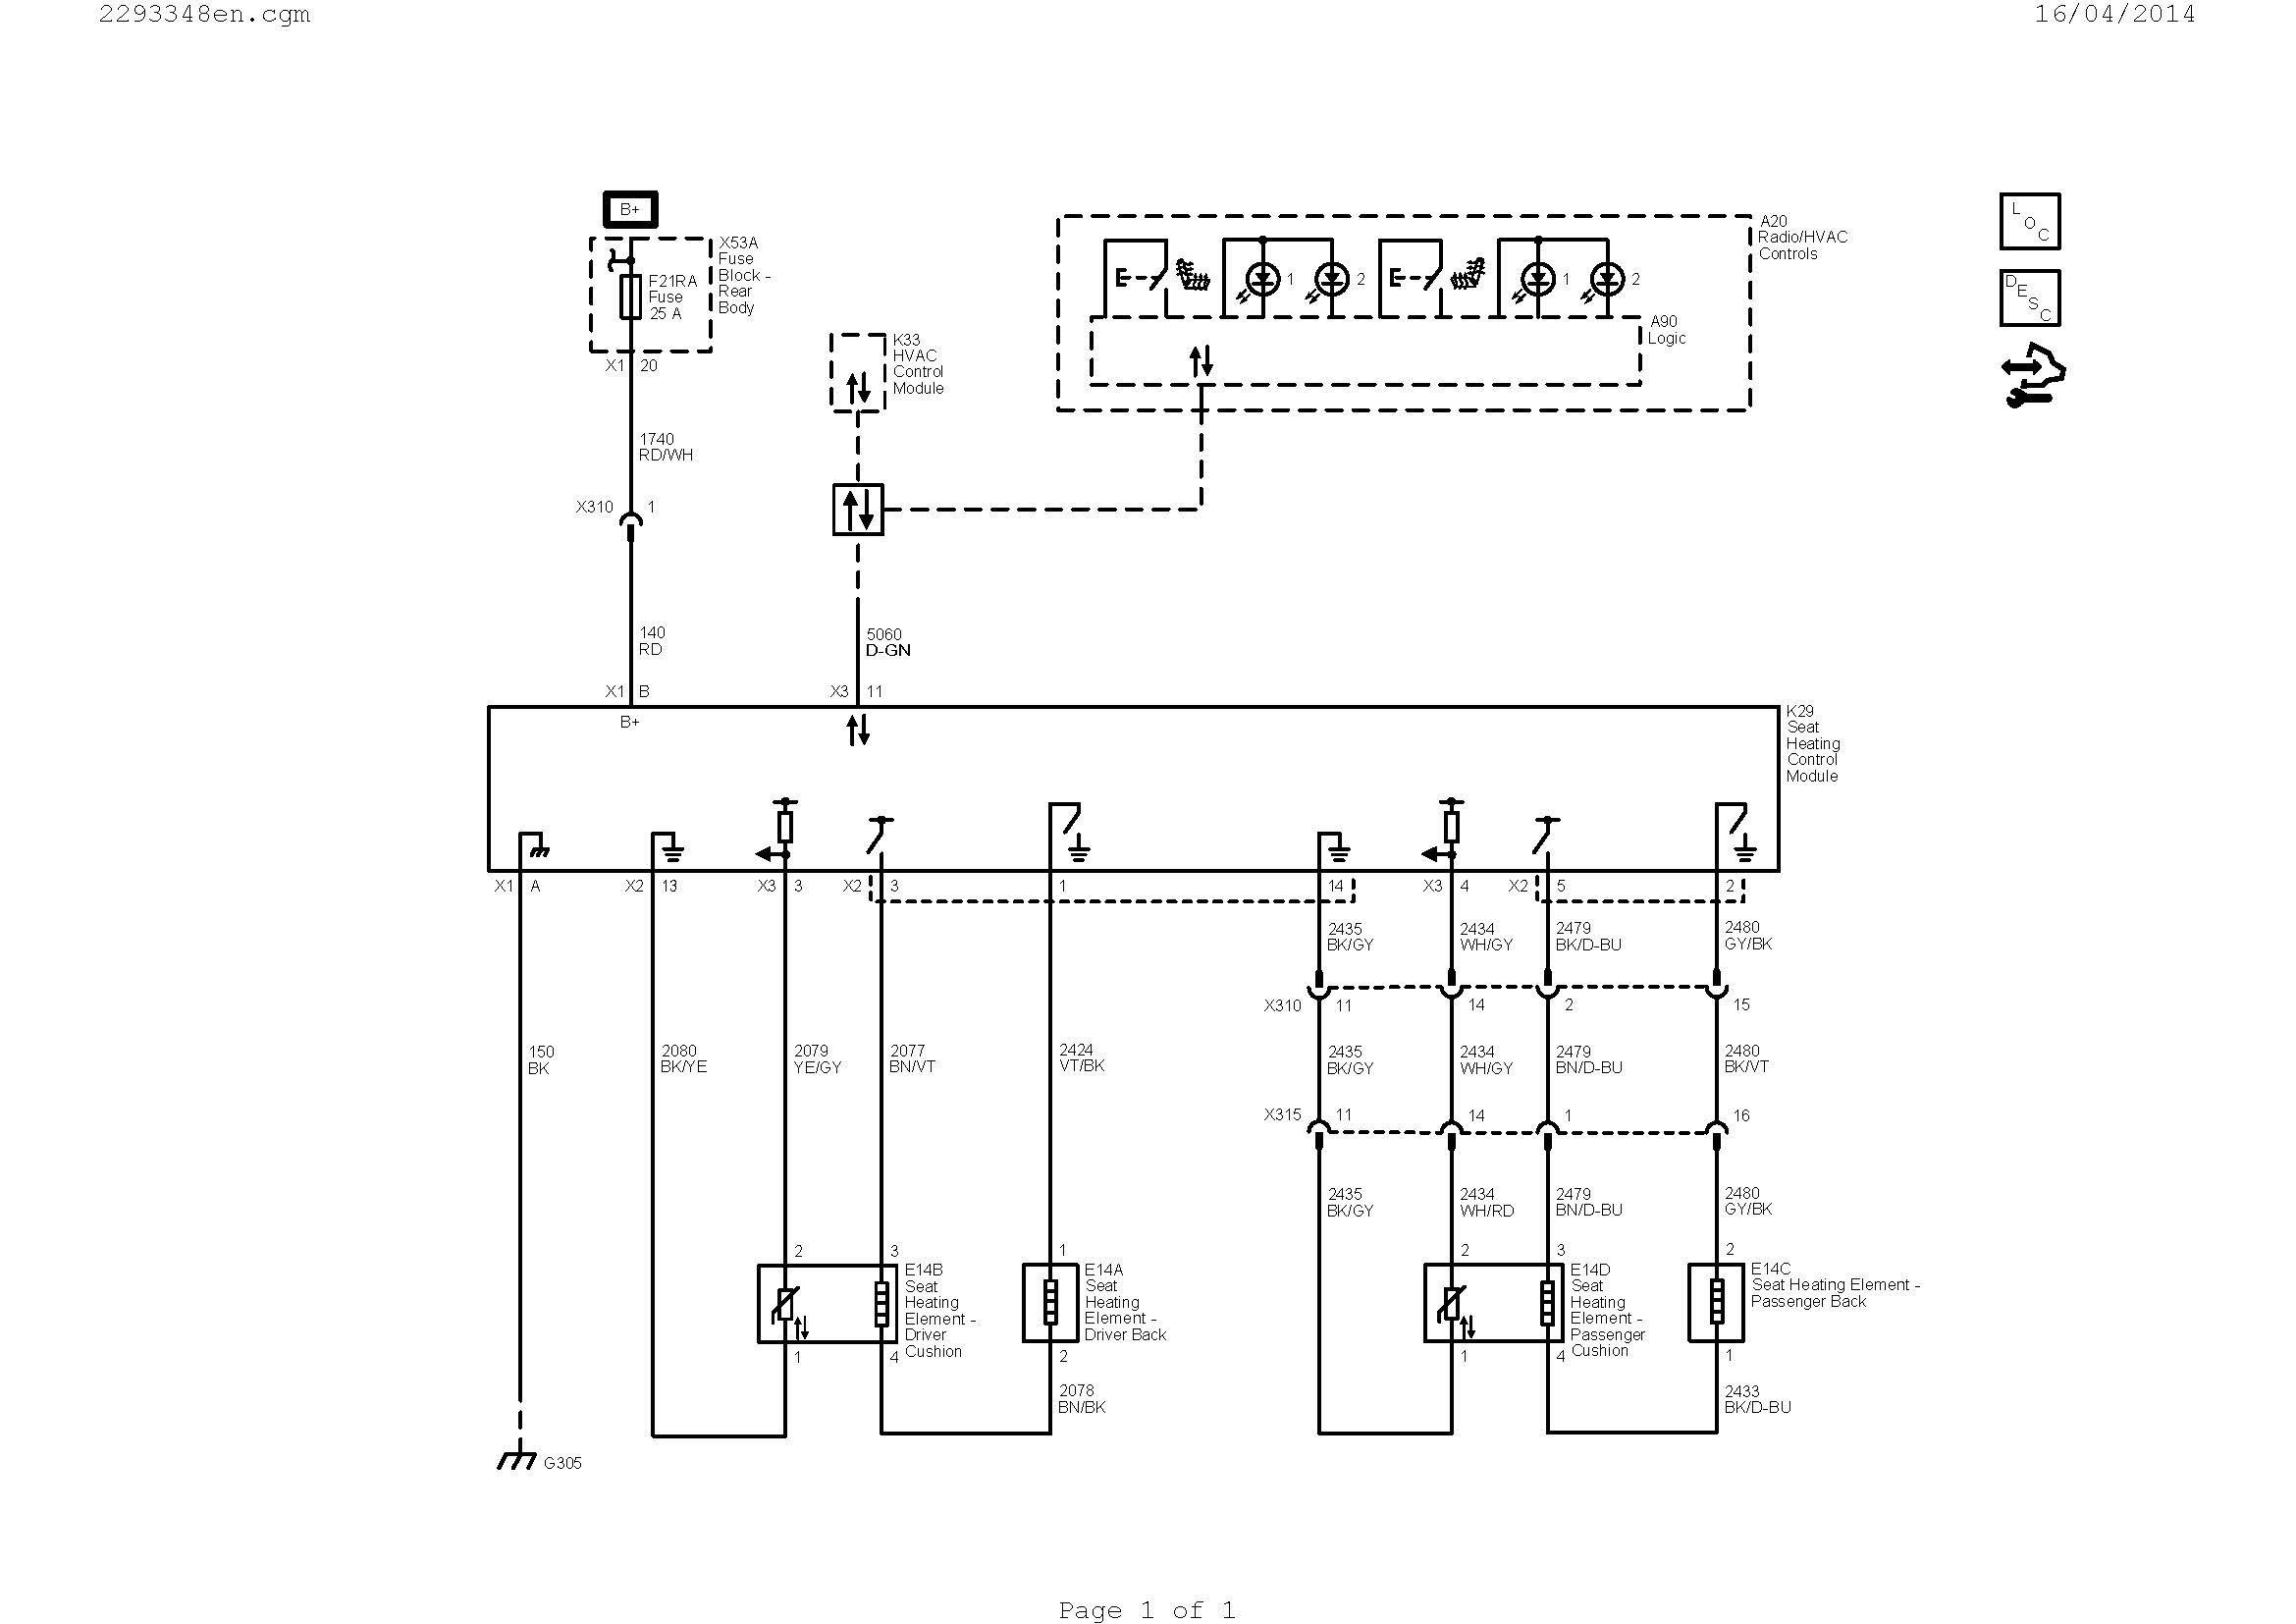 Split Air Conditioning Wiring Diagram from wholefoodsonabudget.com